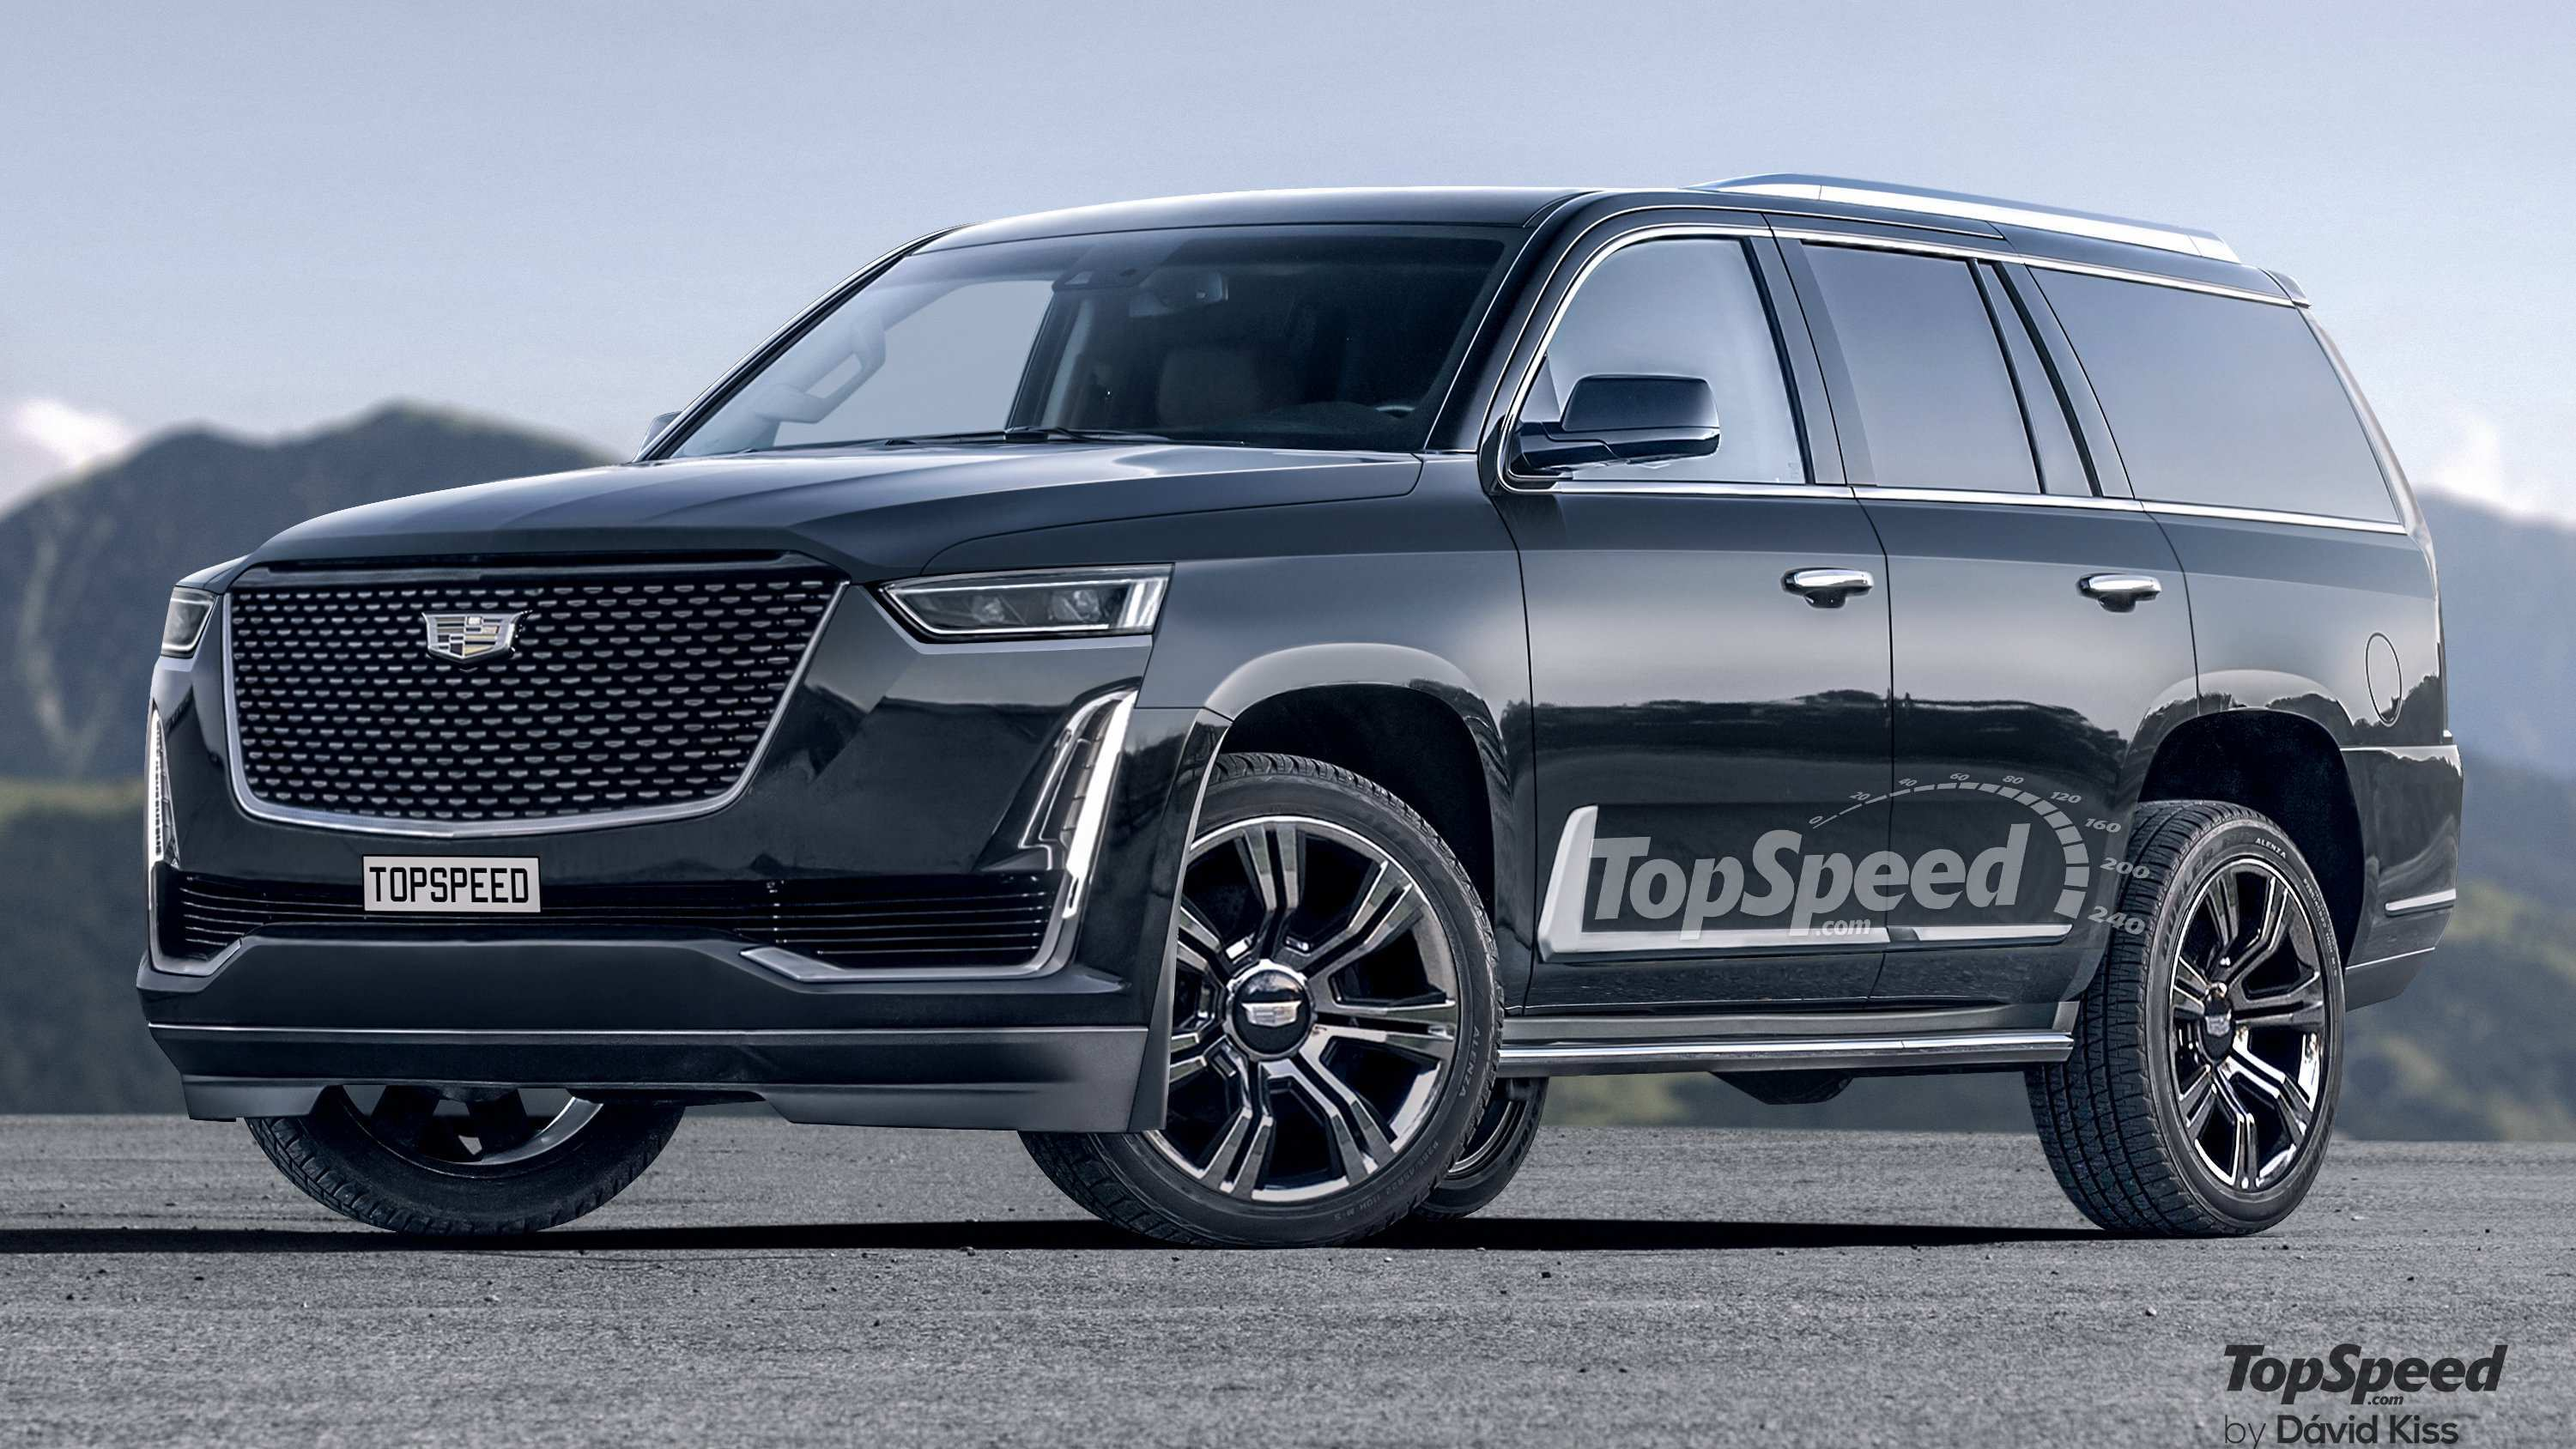 22 The 2020 Cadillac Escalade Premium Luxury Specs And Review